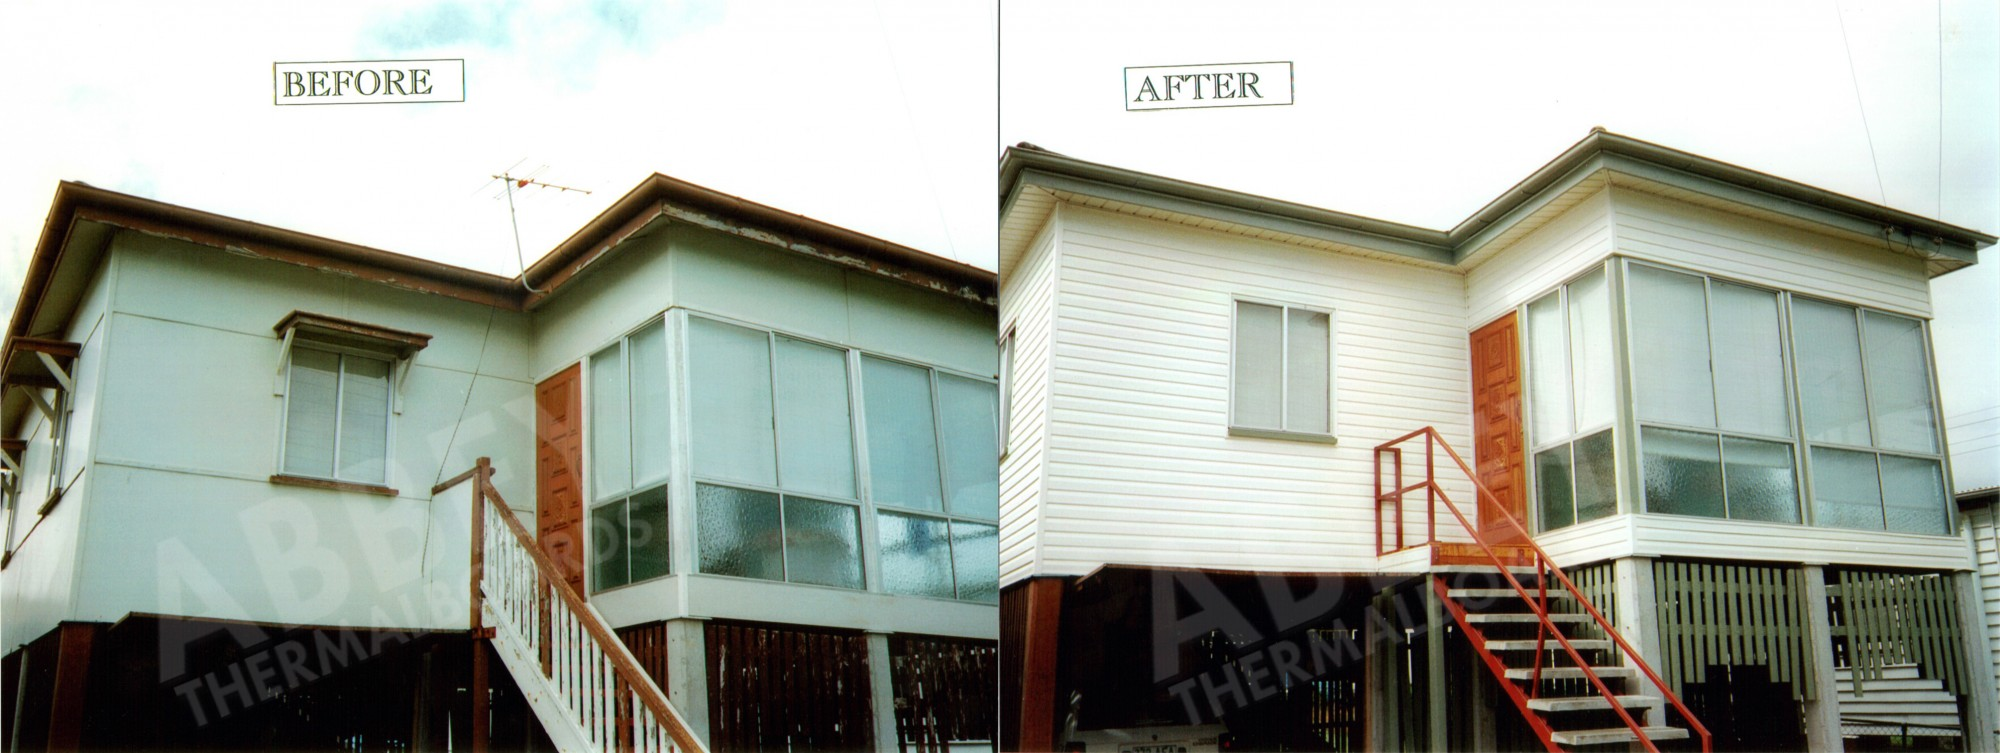 Cladding installed around the front door of this home showing before and after.